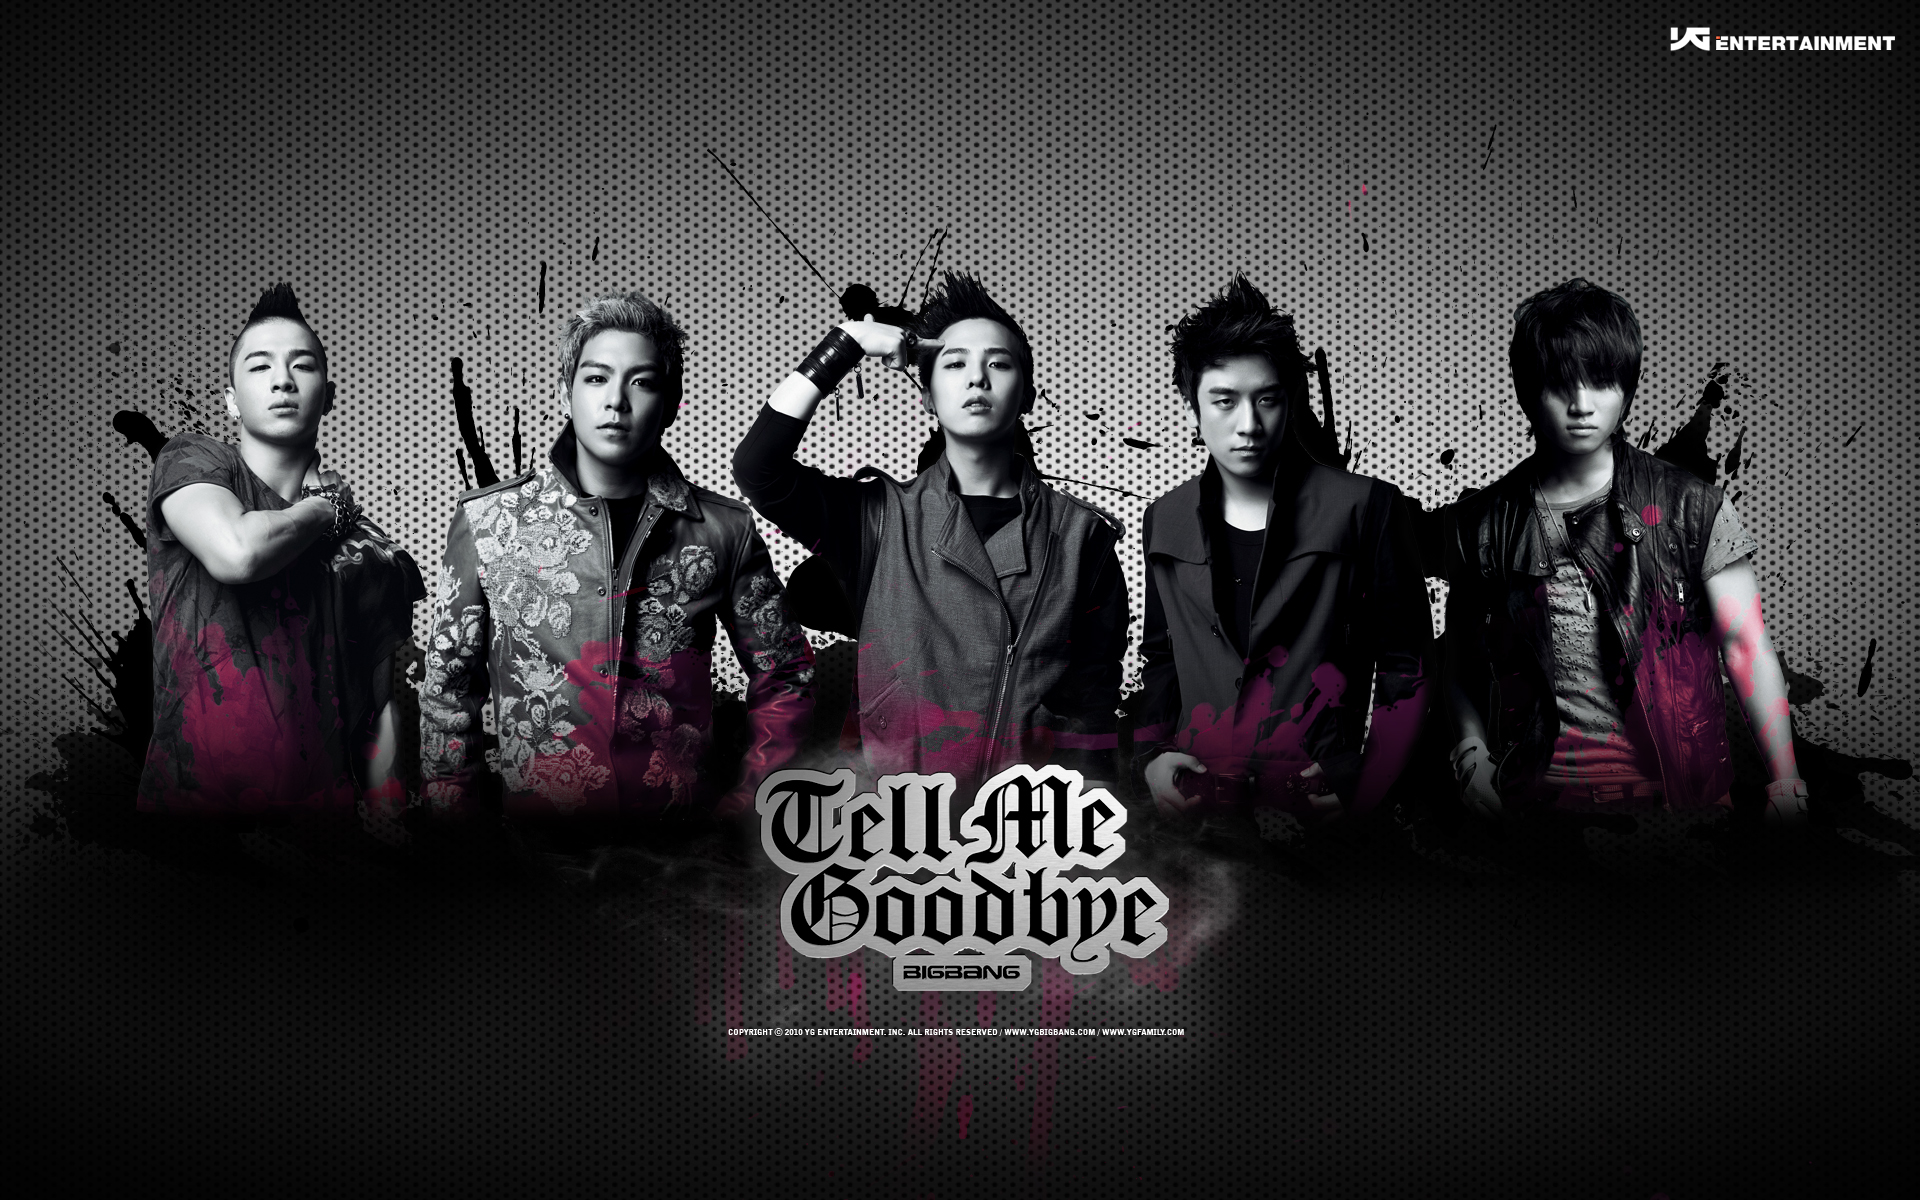 Big Bang wallpaper  kpop 4ever Wallpaper 32175172  Fanpop